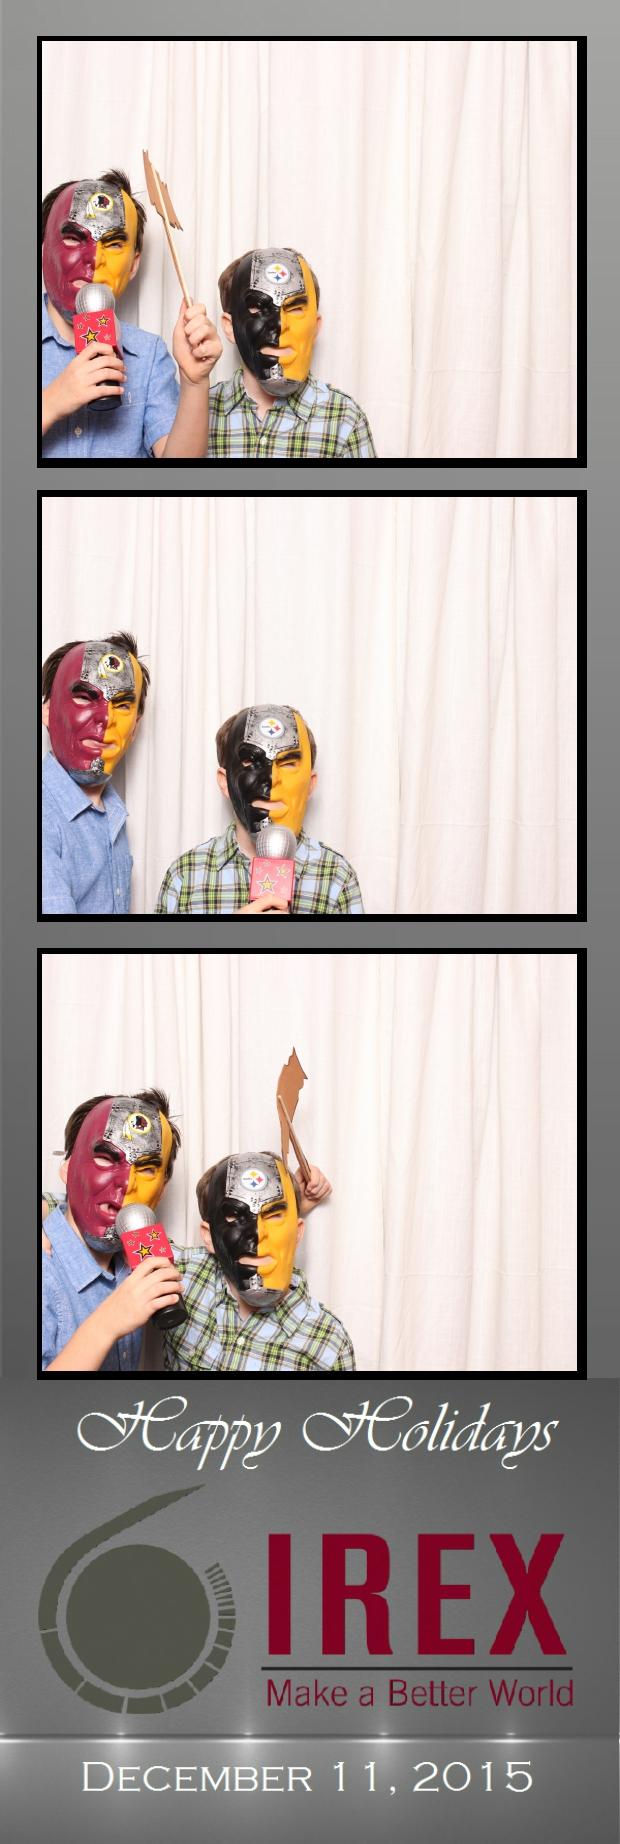 Guest House Events Photo Booth Strips IREX (9).jpg